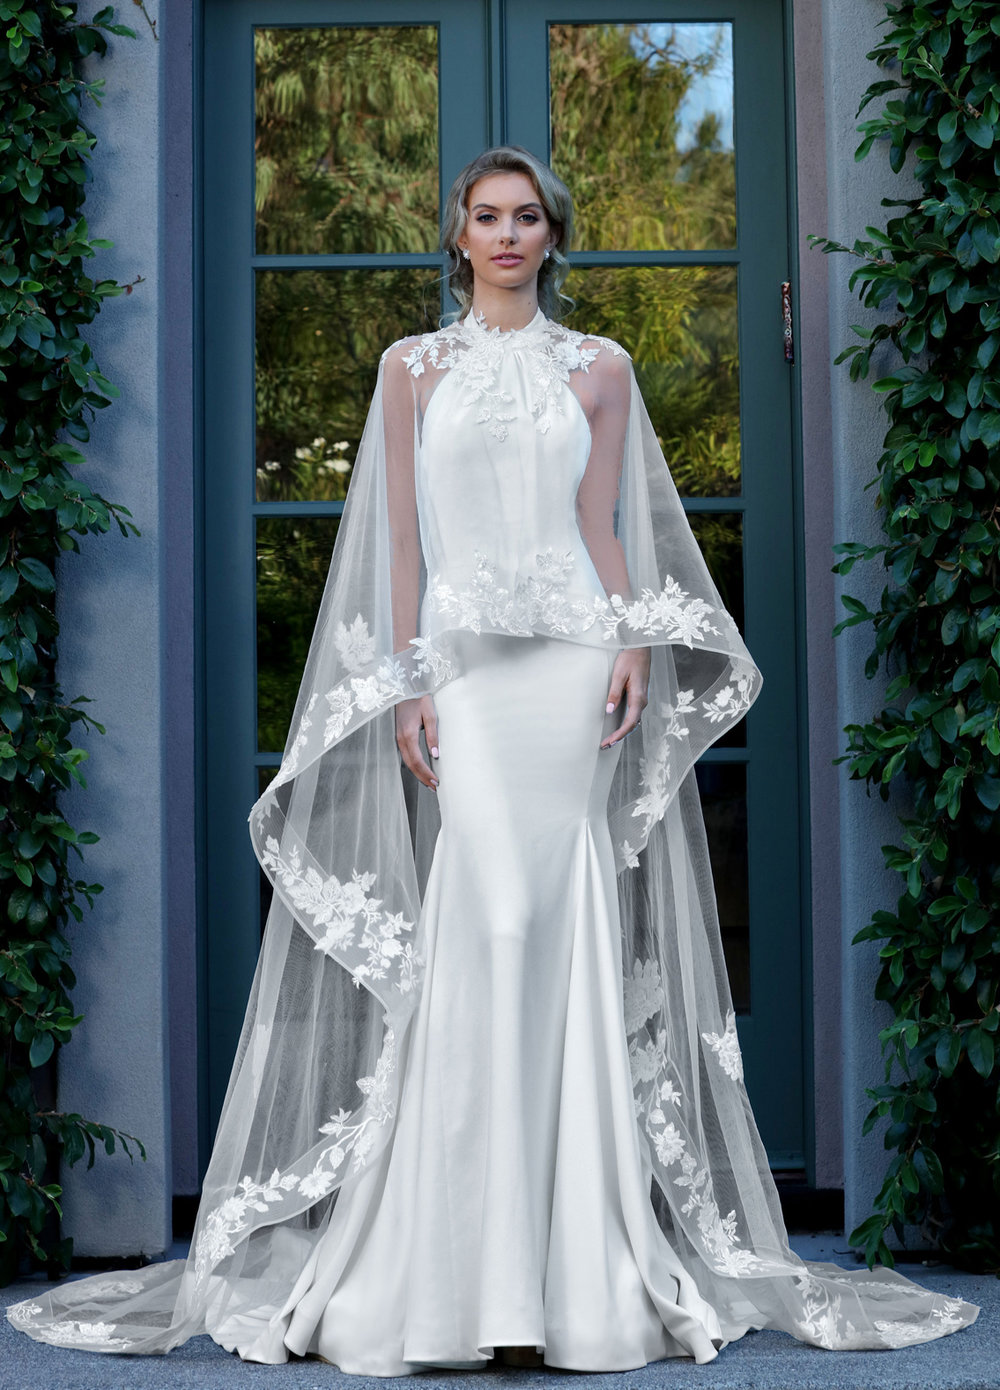 Available at Bride To Be Couture - Inventory # 02805